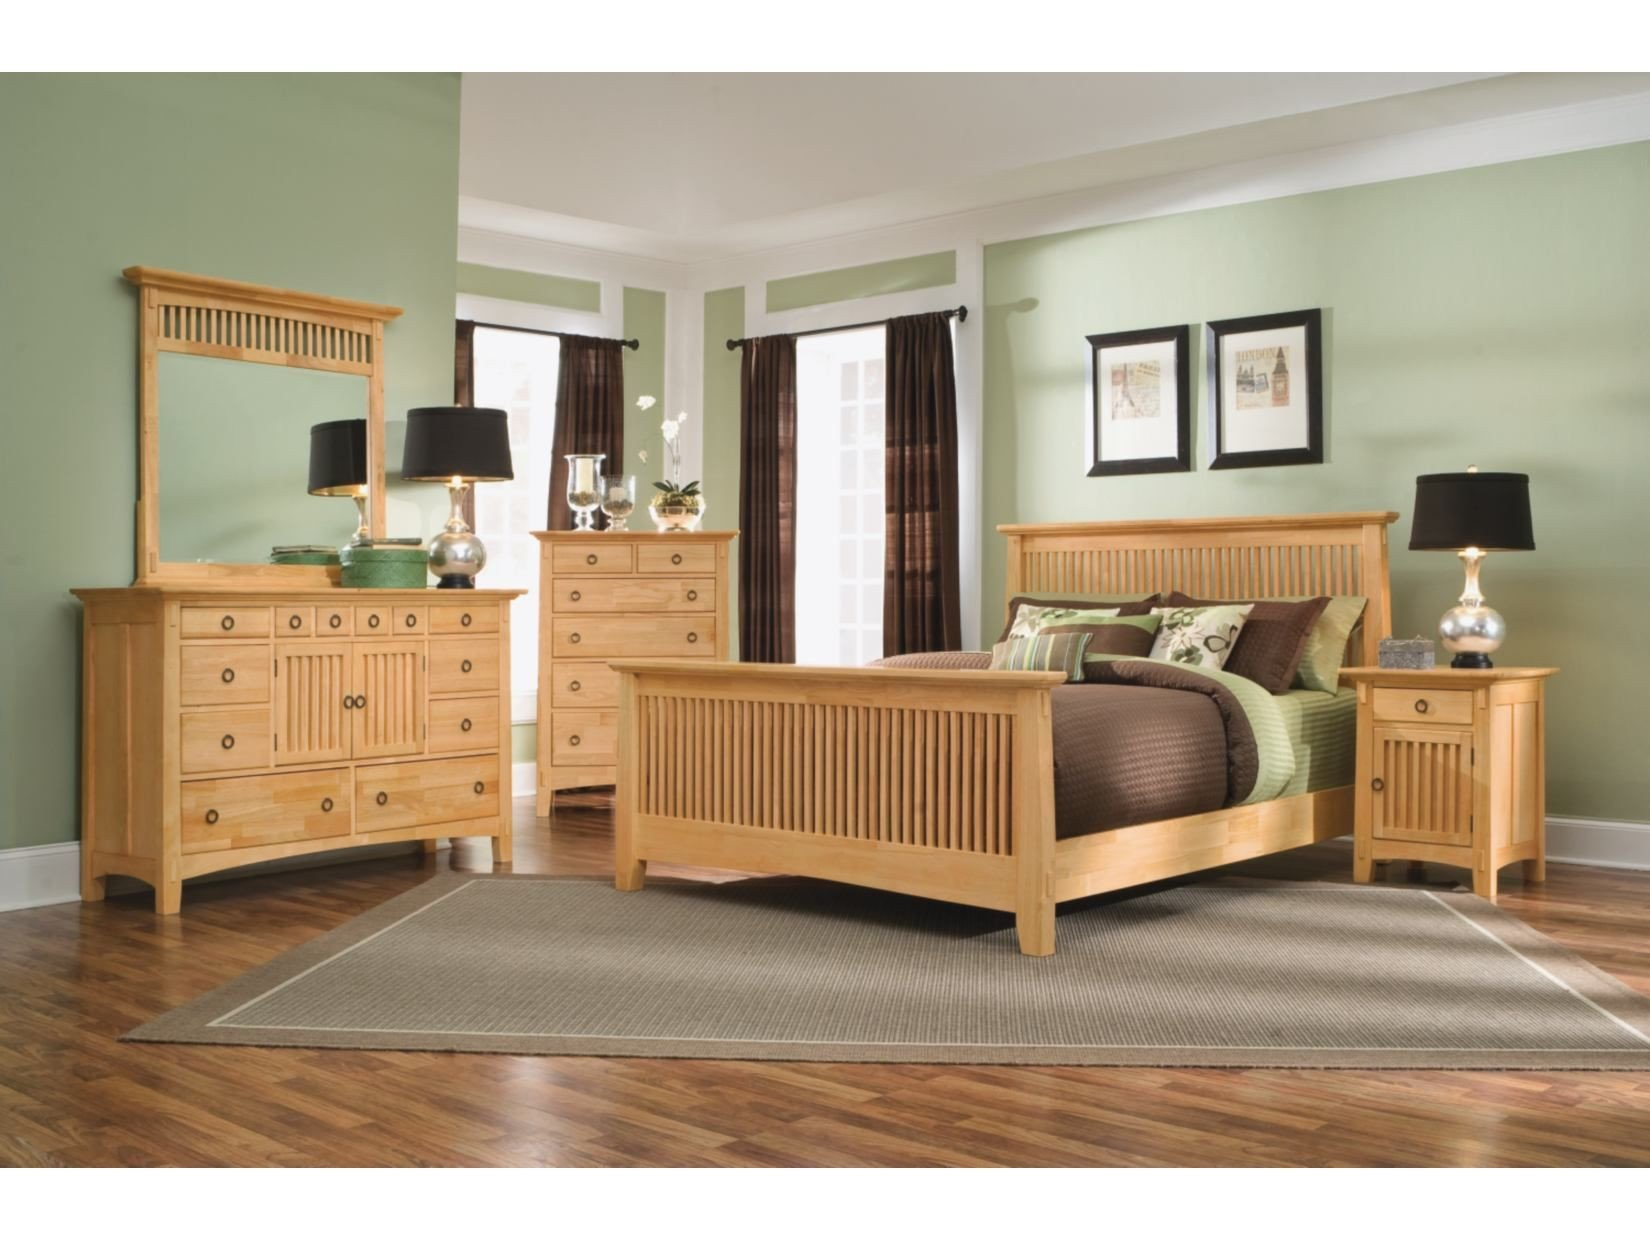 Queen Size Bedroom Suite Inspirational Arts & Crafts 5 Pc Bedroom Package American Signature